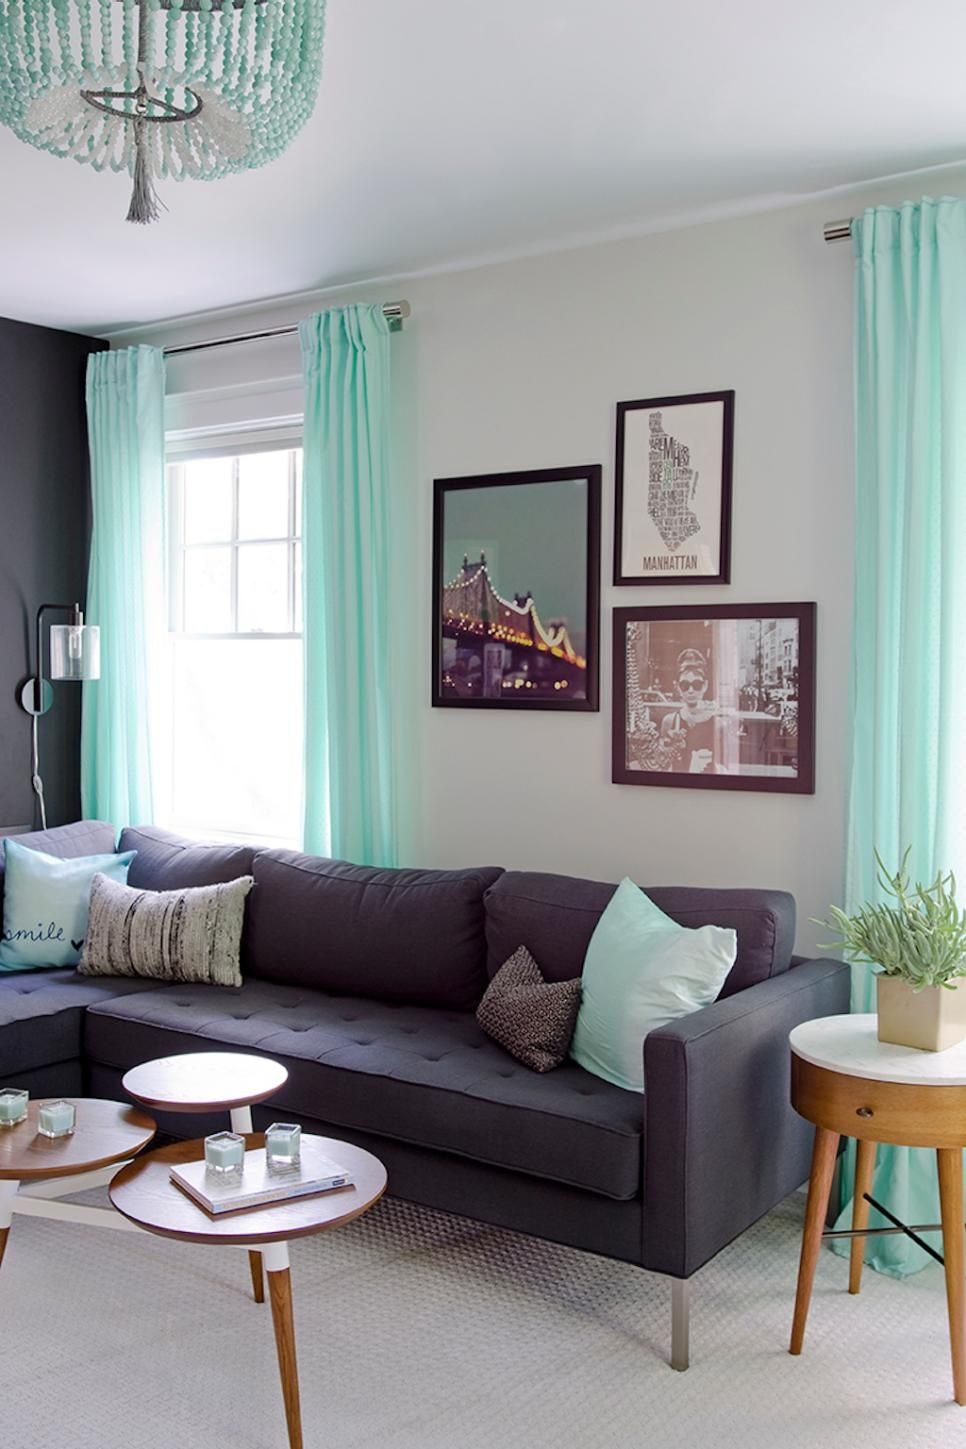 Fab Living Room With Midcentury Modern Flair Green Furniture